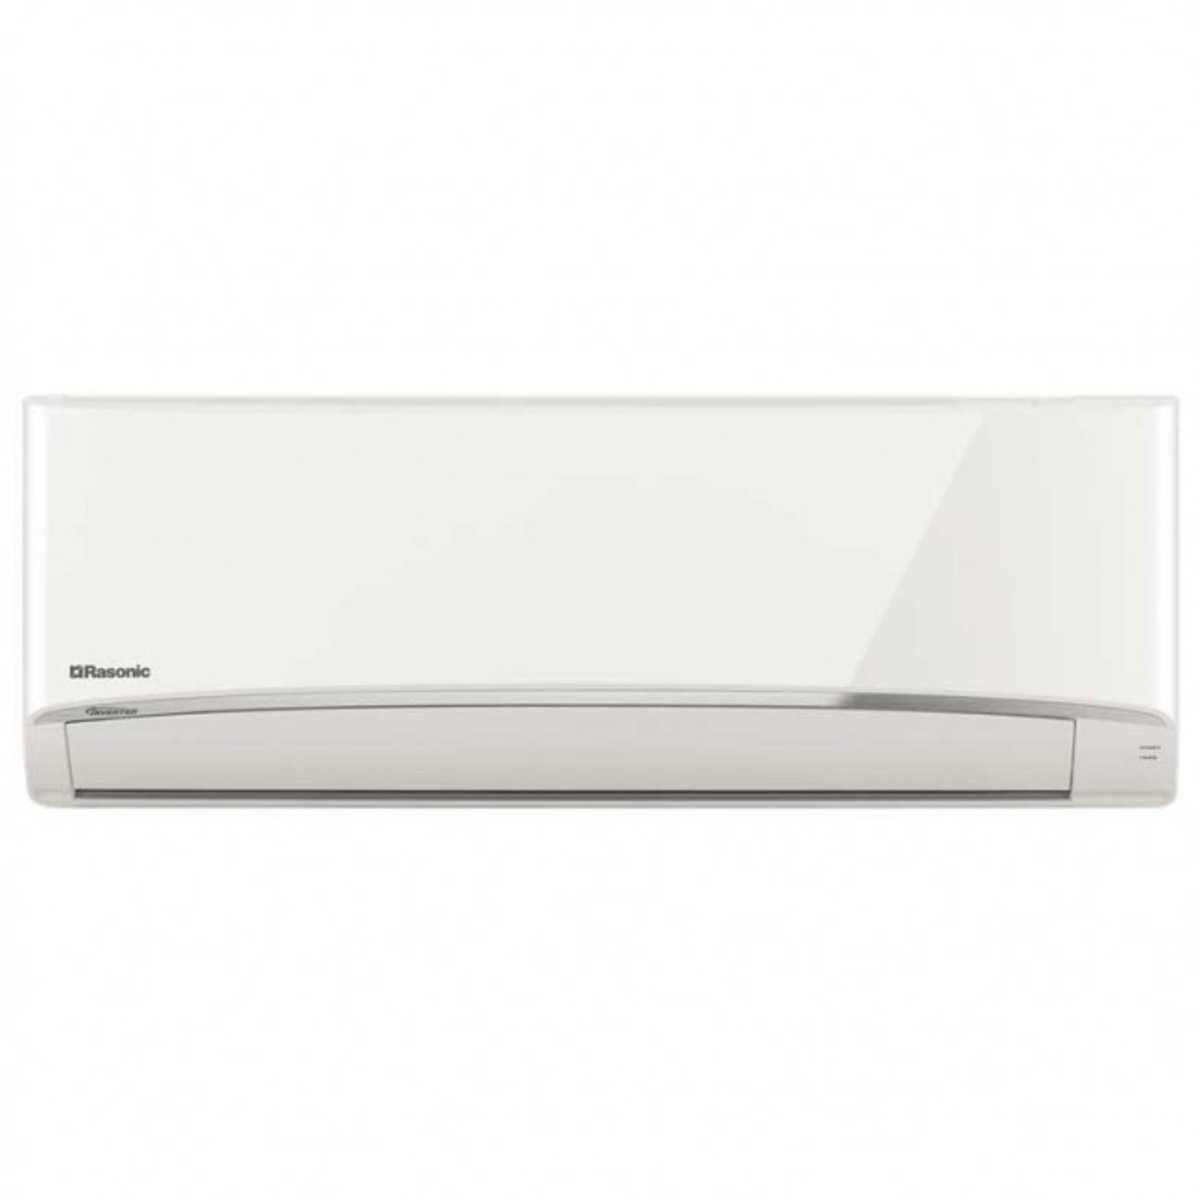 Inverter Split Type Air Conditioner RS-YS12UK / RU-YS12UK